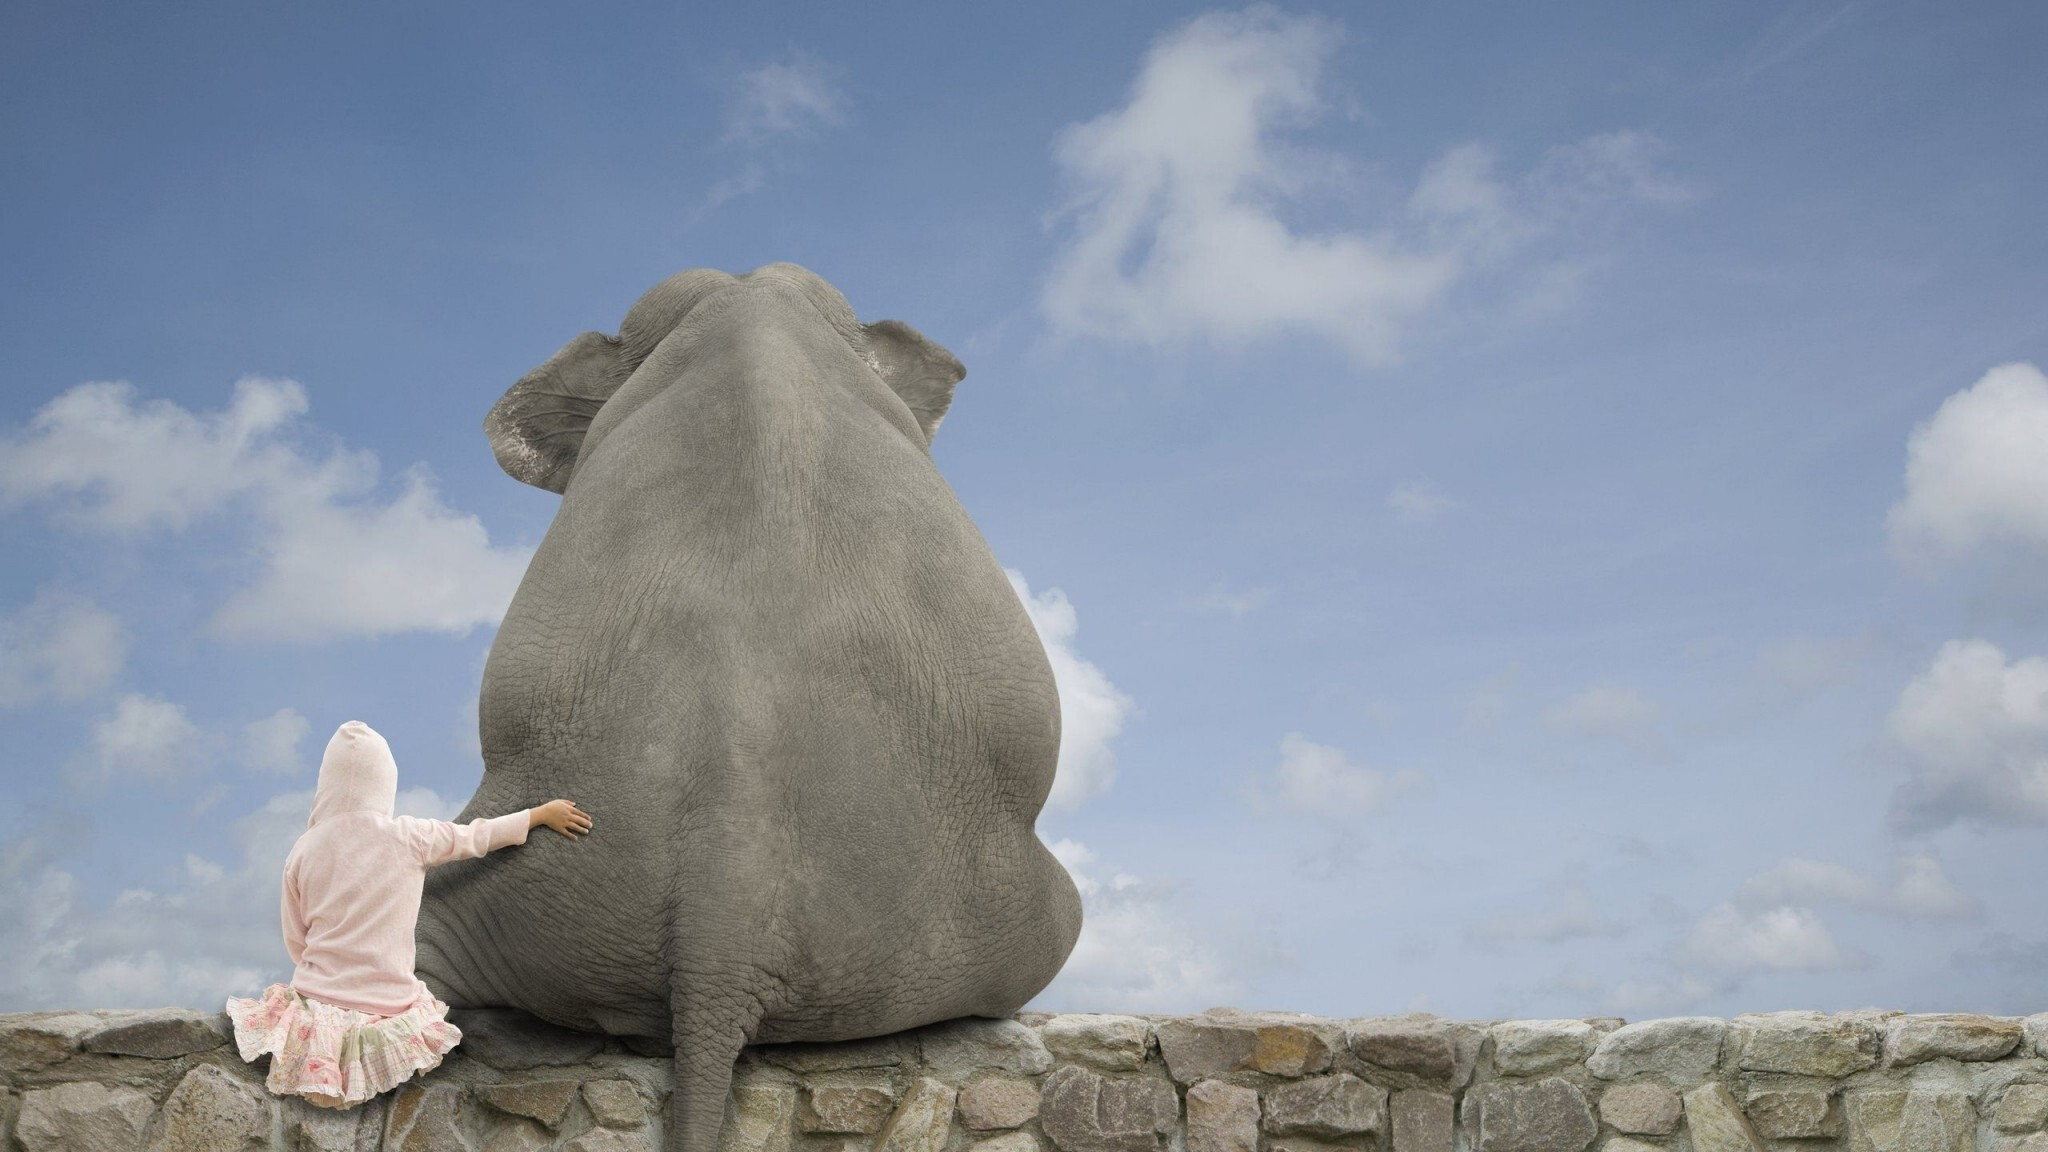 Must see Wallpaper Home Screen Elephant - Baby_Seatting_Near_Big_Elephant_Funny_Wallpapers  Collection_704179.jpg